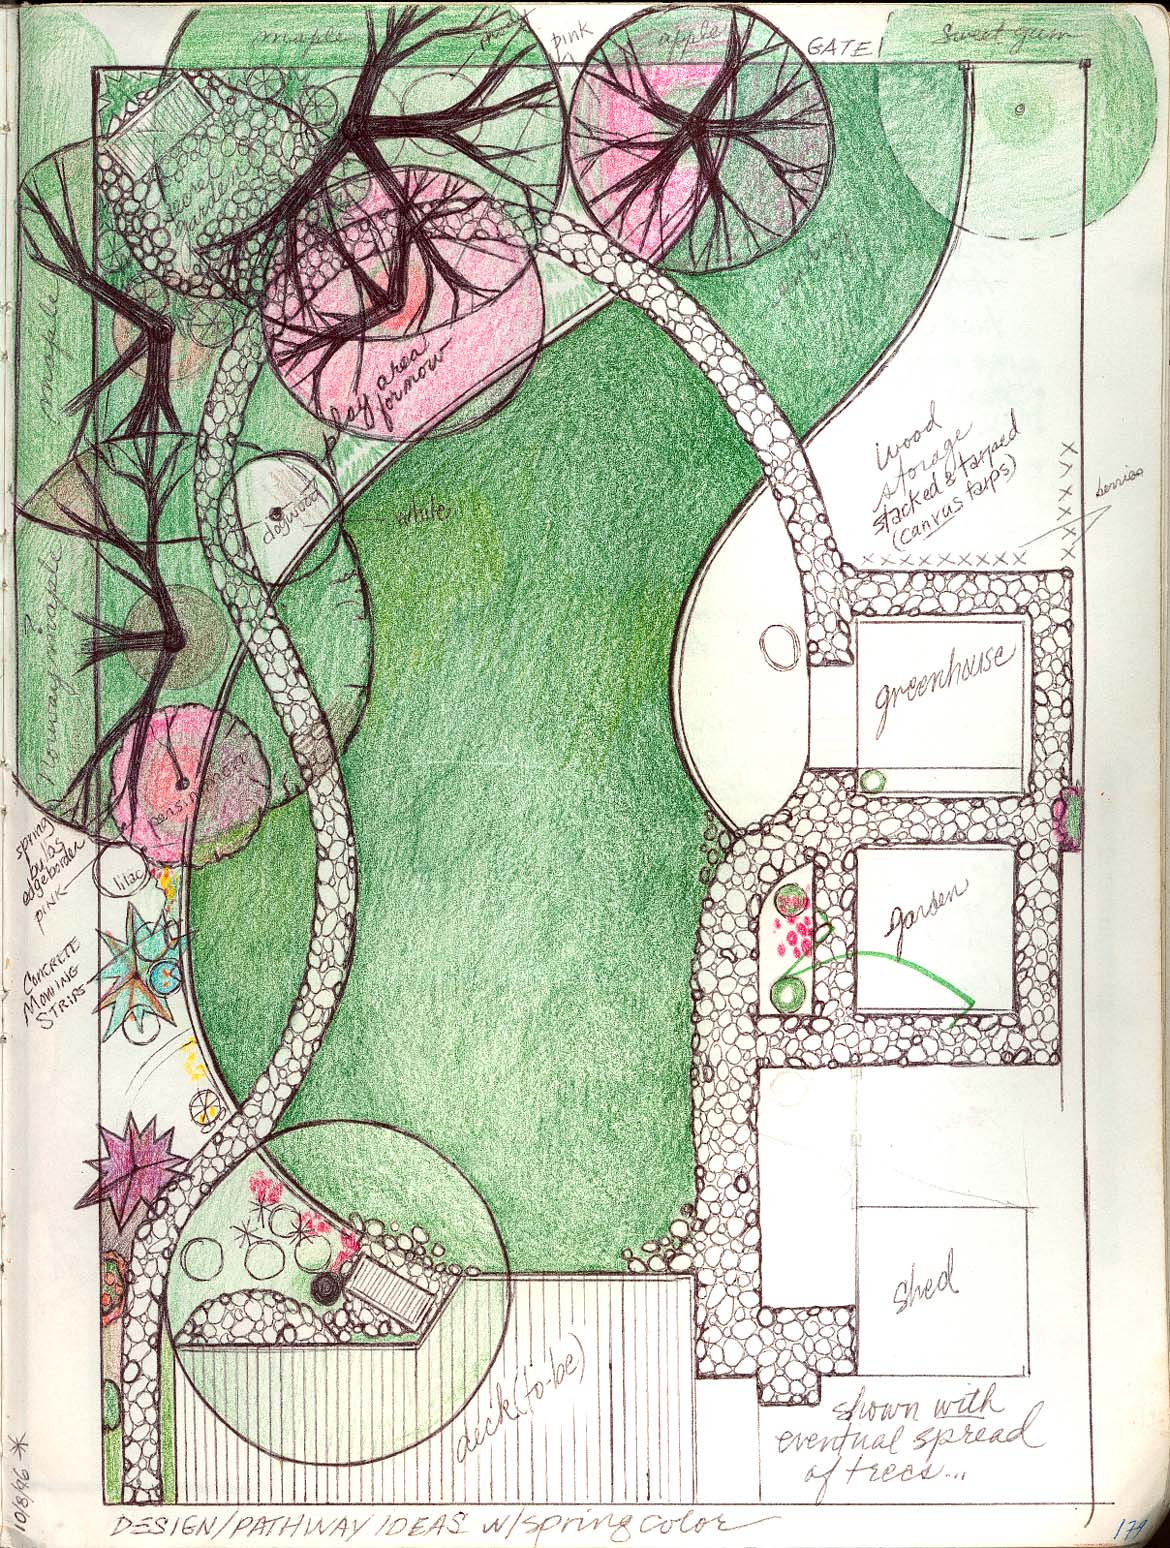 Gardenscaping plans sketches for Creative garden design 805